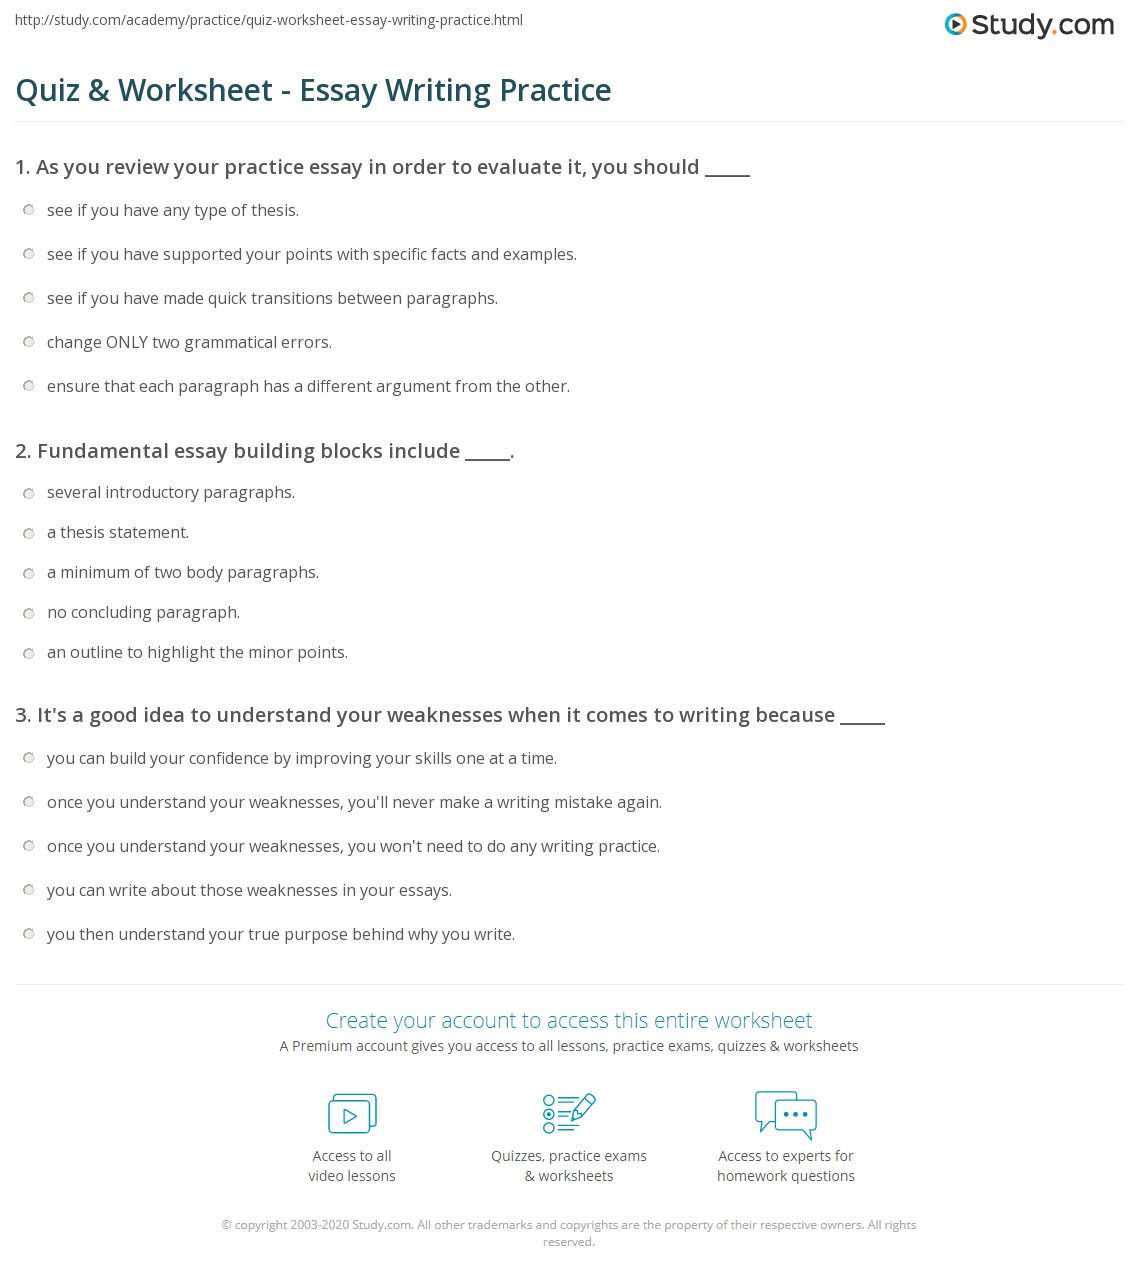 practicing essay writing Look at the essay and do the exercises to practise and improve your writing skills preparation are these points about video games or sports circle the correct subject.